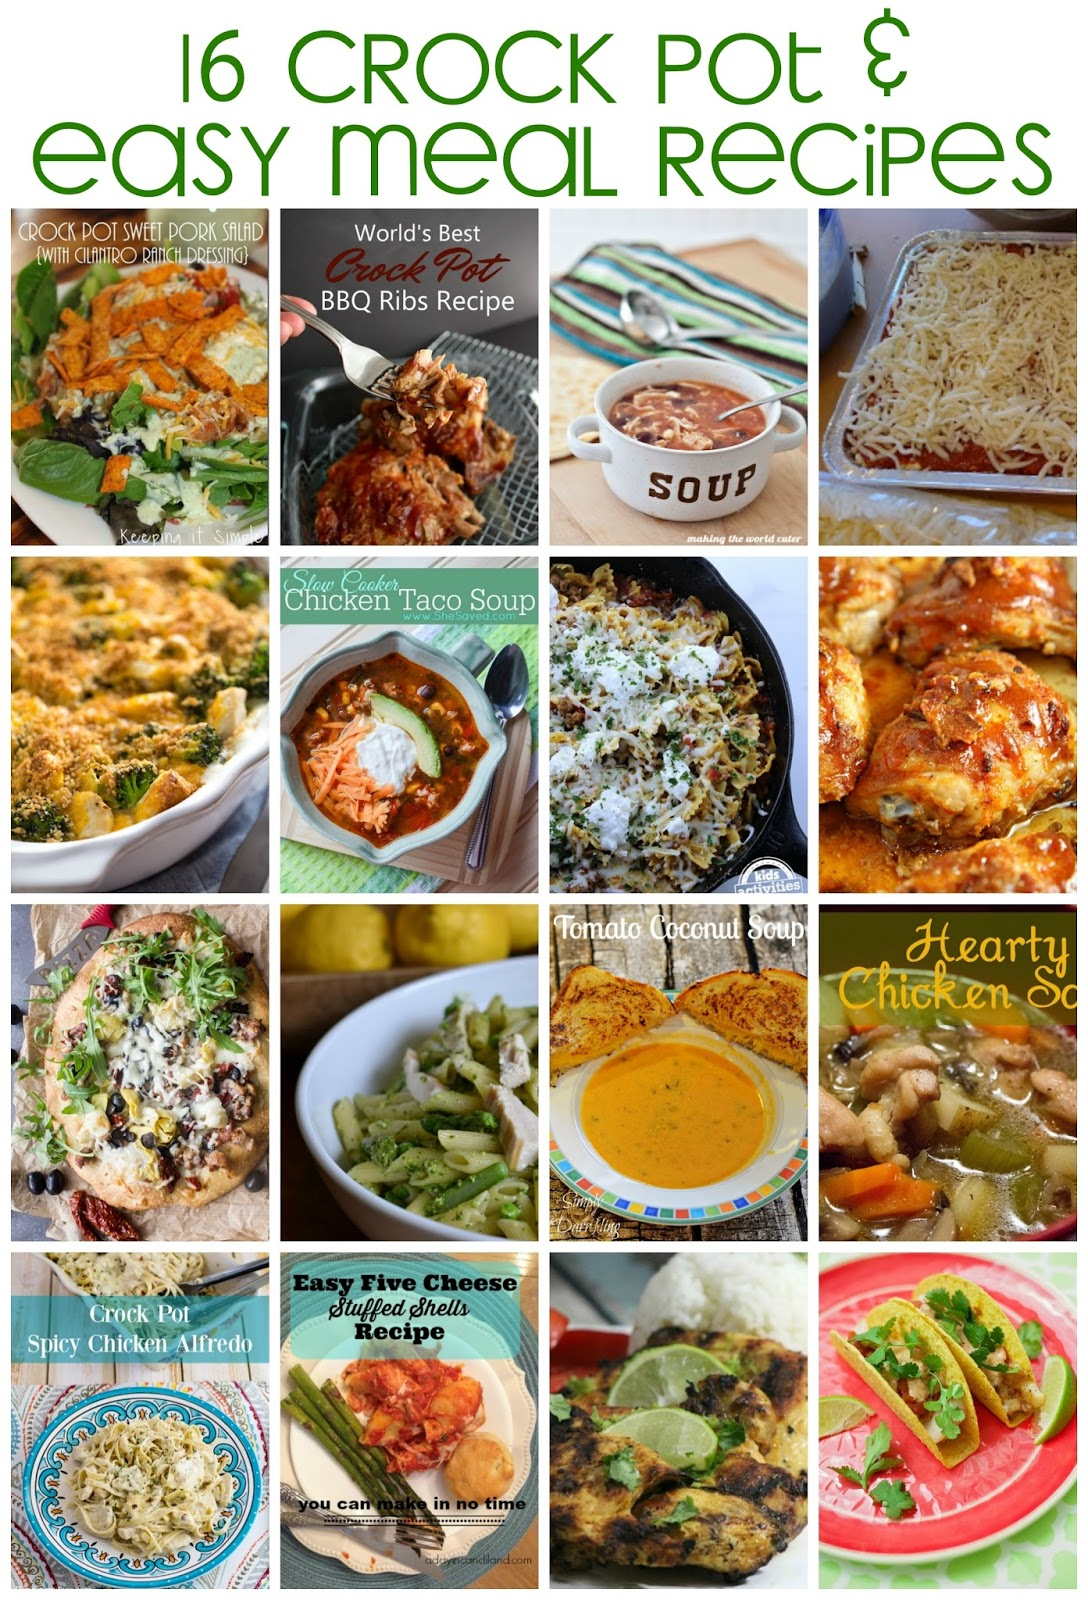 16 Crock Pot and Easy Meal Recipes. Delicious ideas for weeknight family dinners